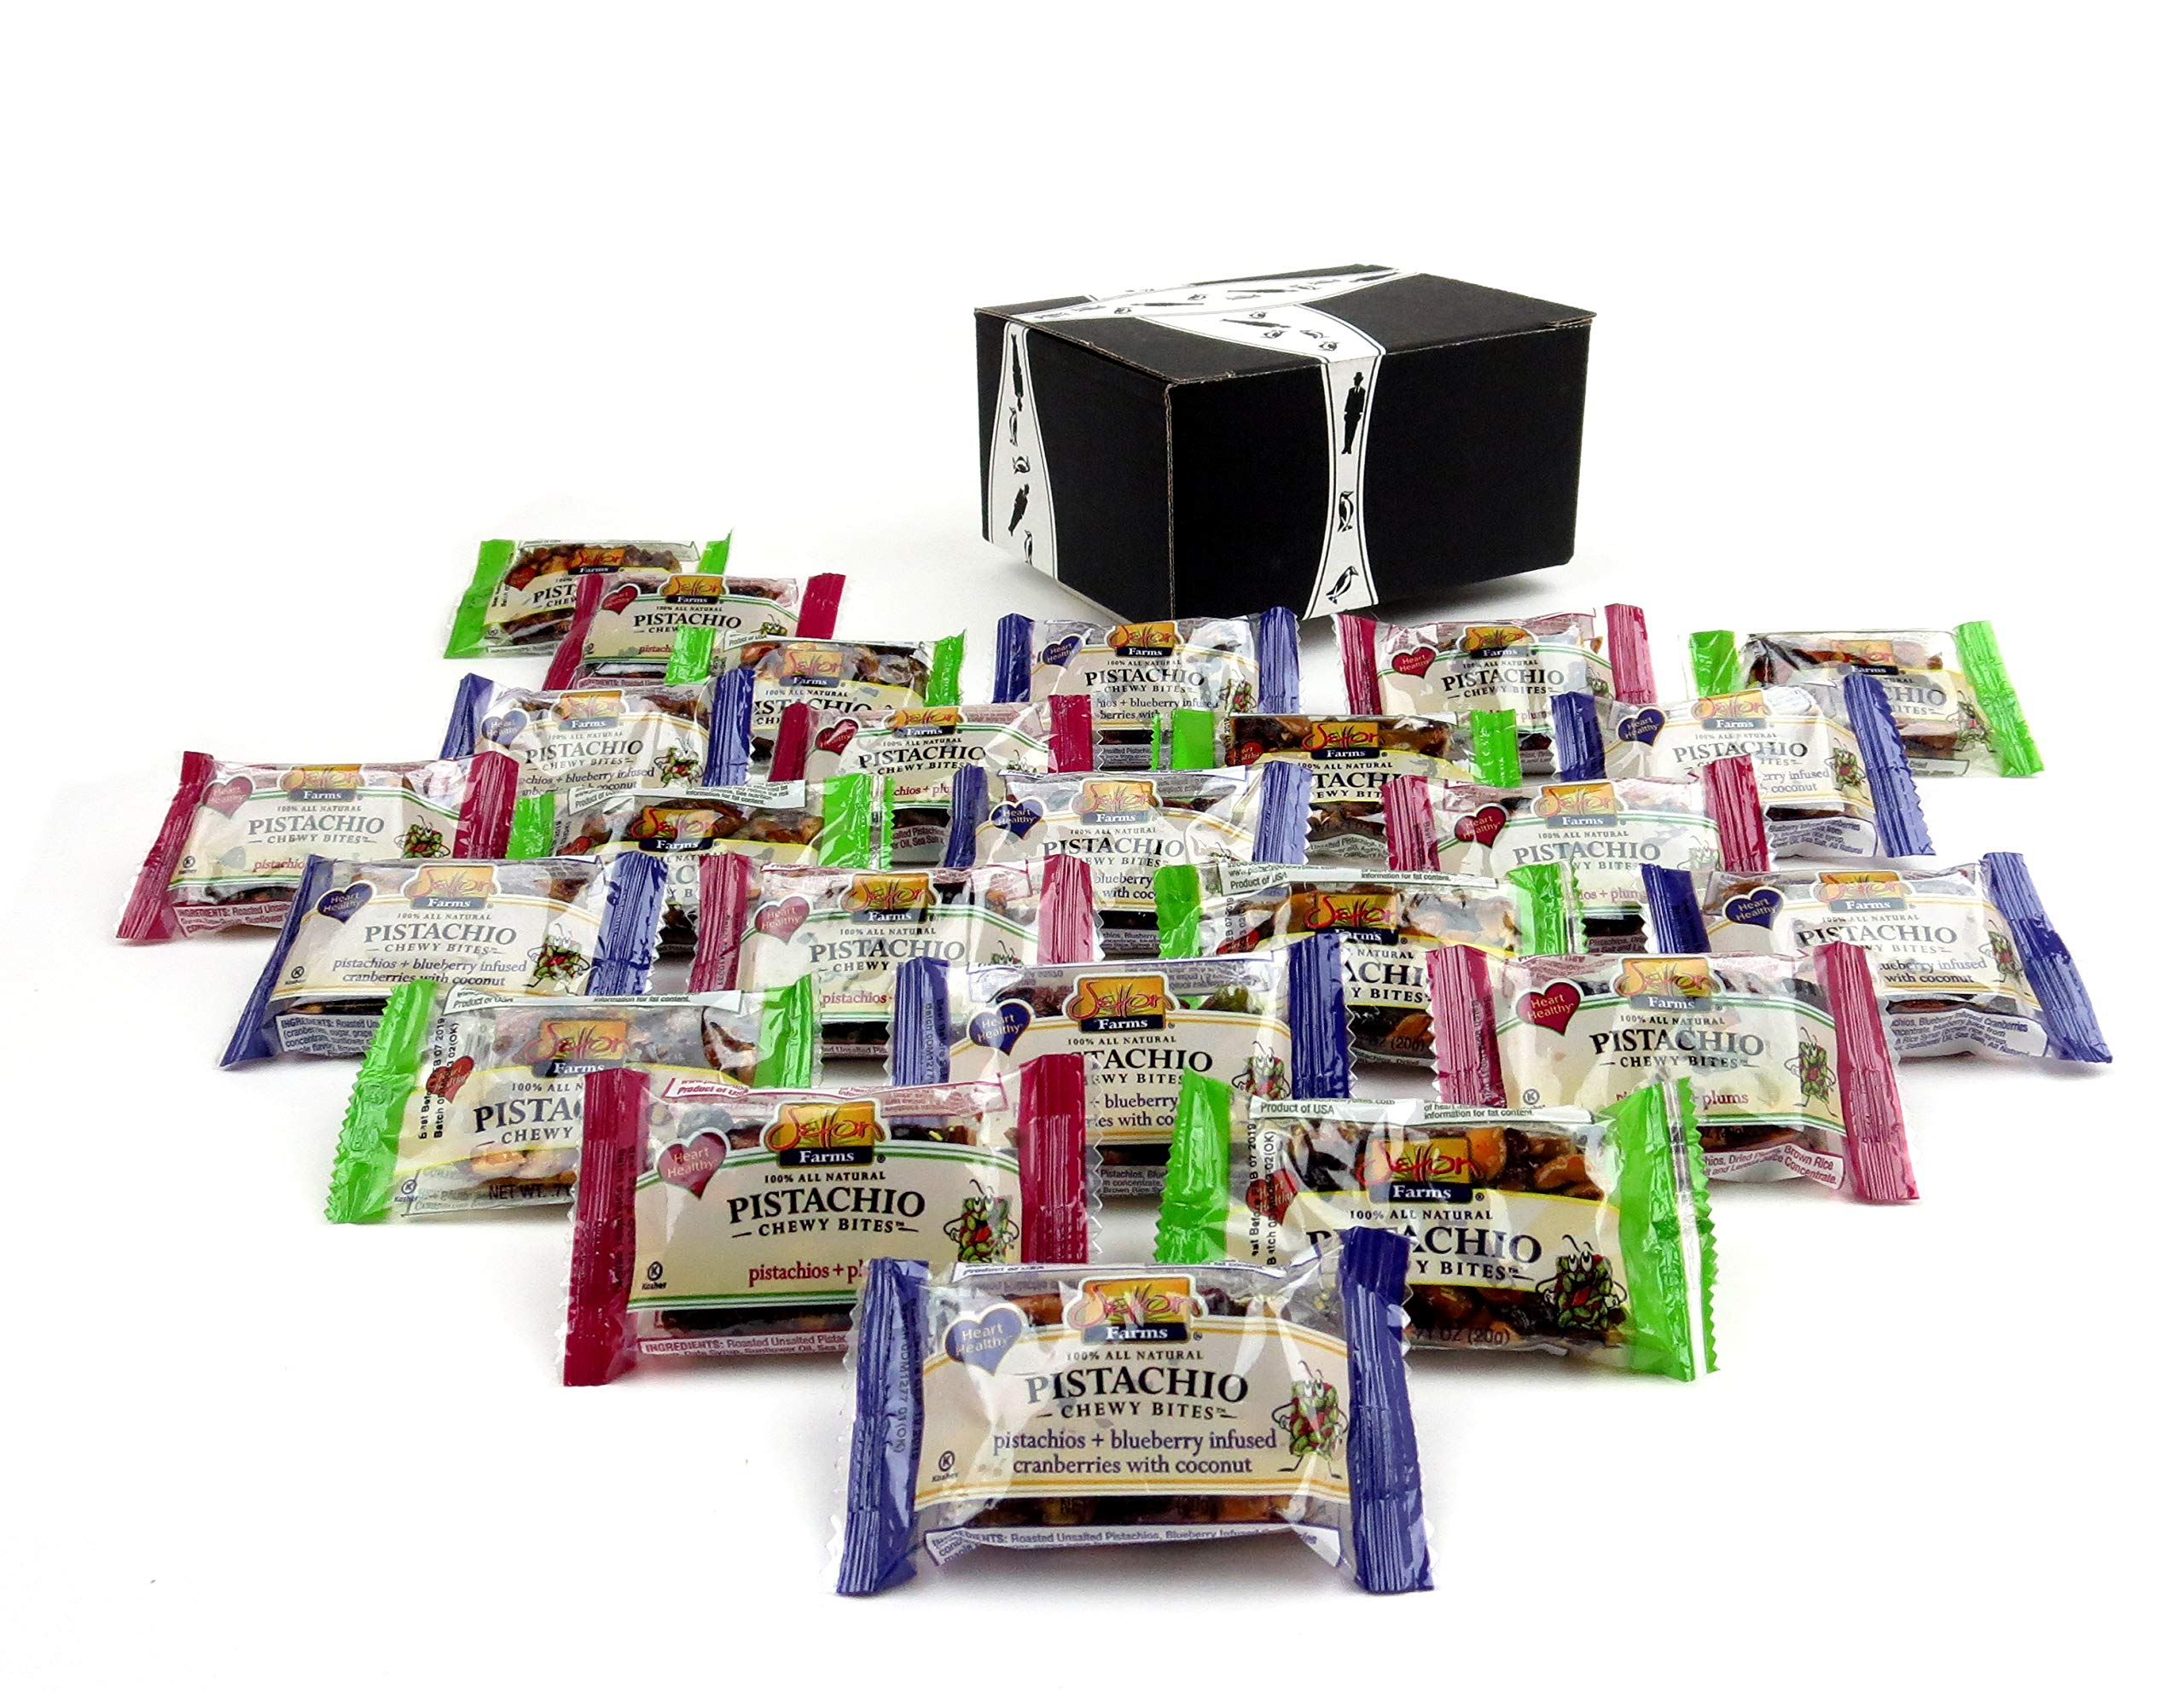 Setton Farms Pistachio Chewy Bites 3-Flavor Variety: Eight 0.71 oz Packages Each of Original, Plum, and Blueberry Infused Cranberry in a BlackTie Box (24 Items Total)